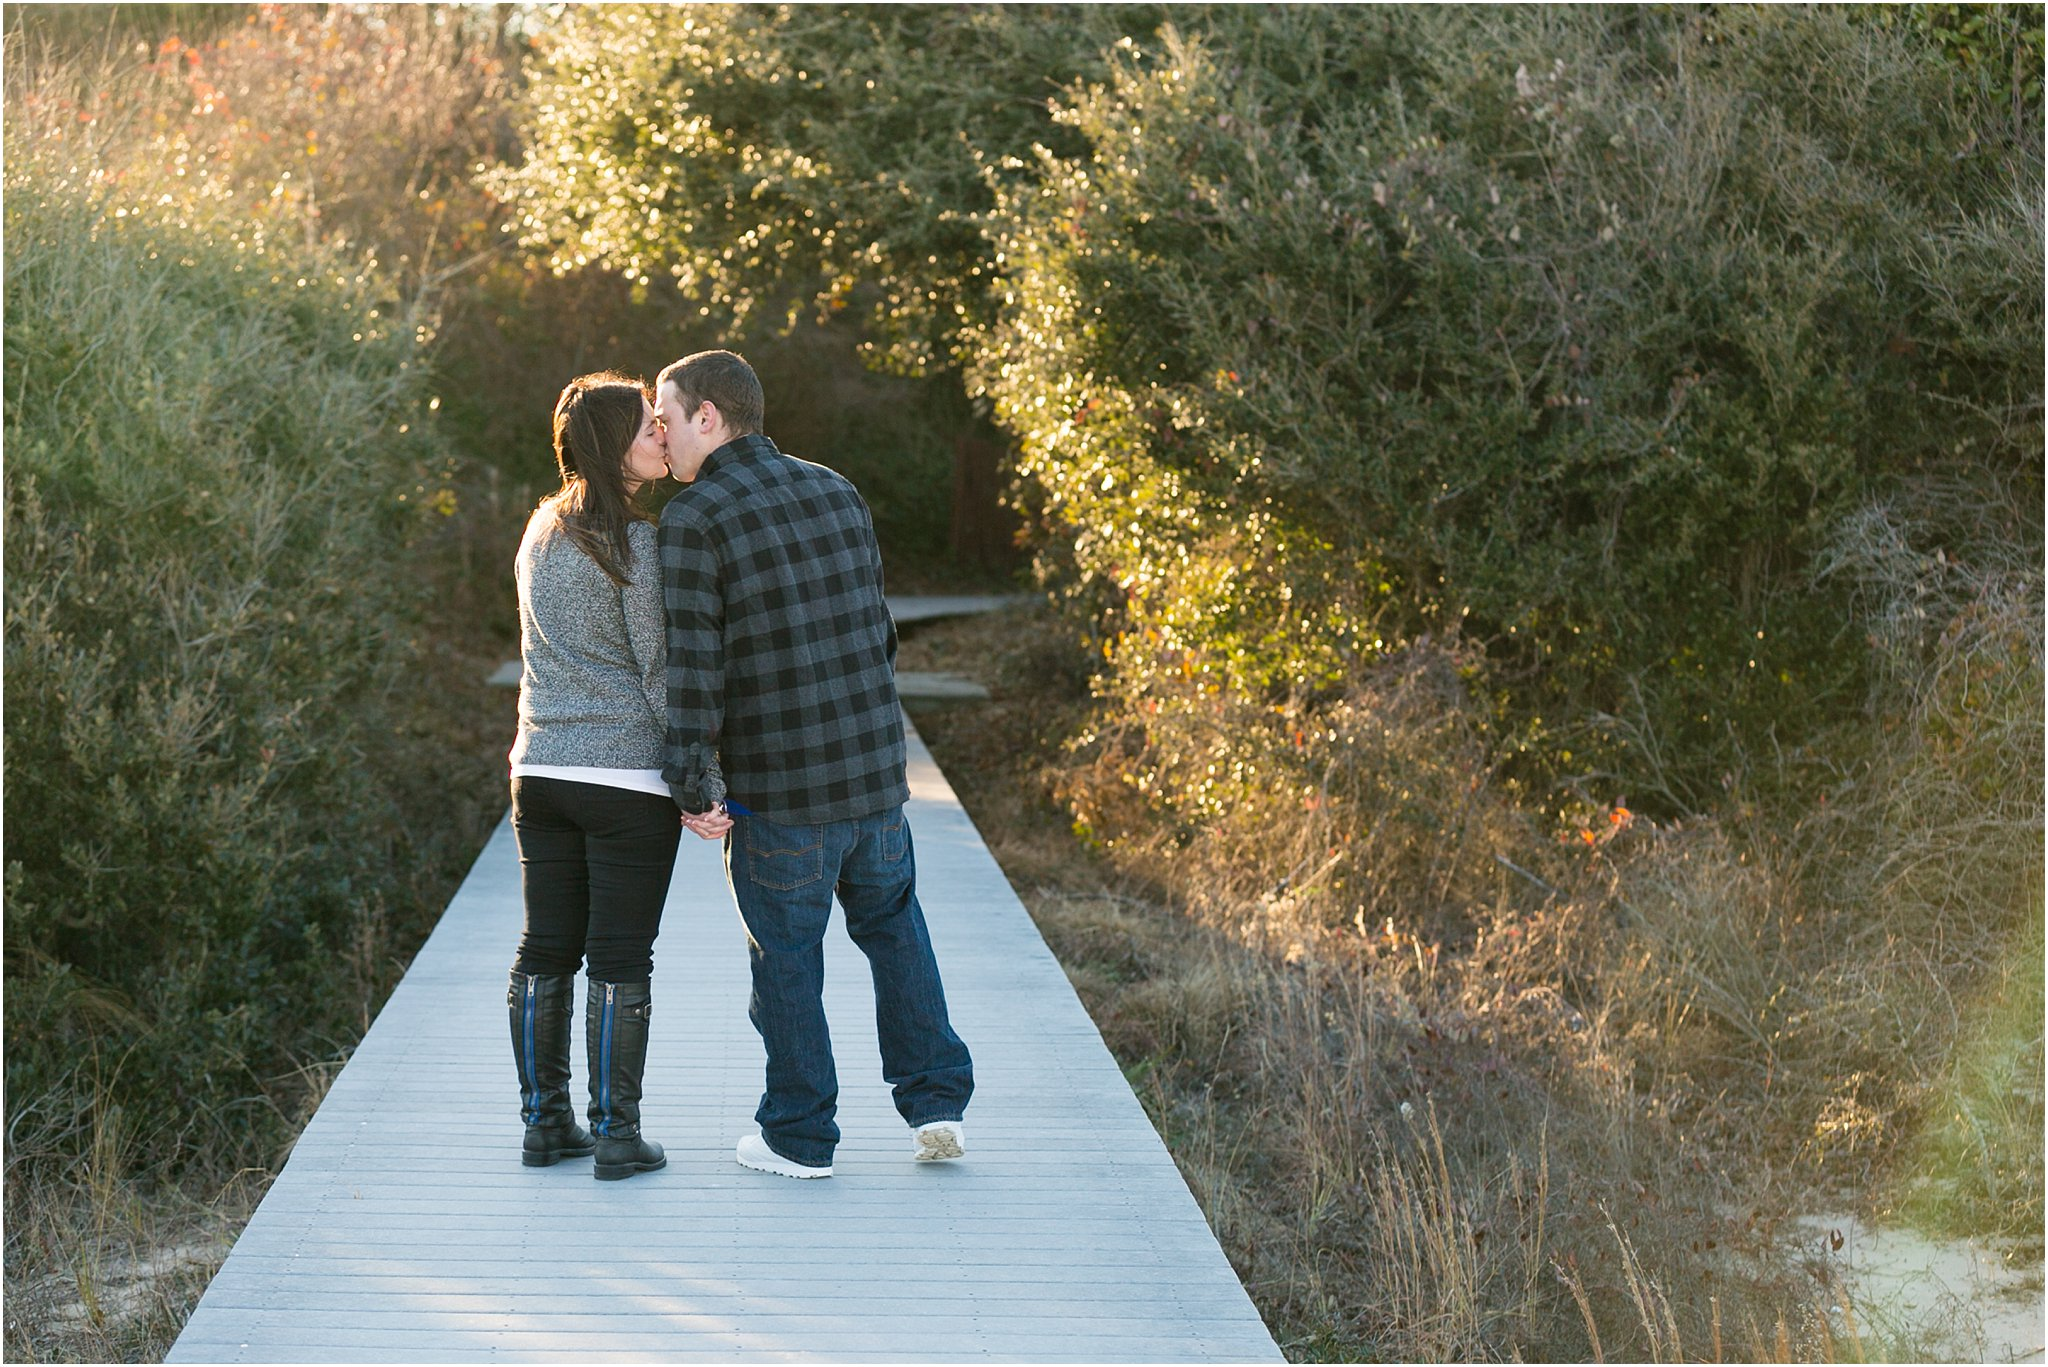 jessica_ryan_photography_winter_engagements_virginia_beach_oceanfront_virginia_0758